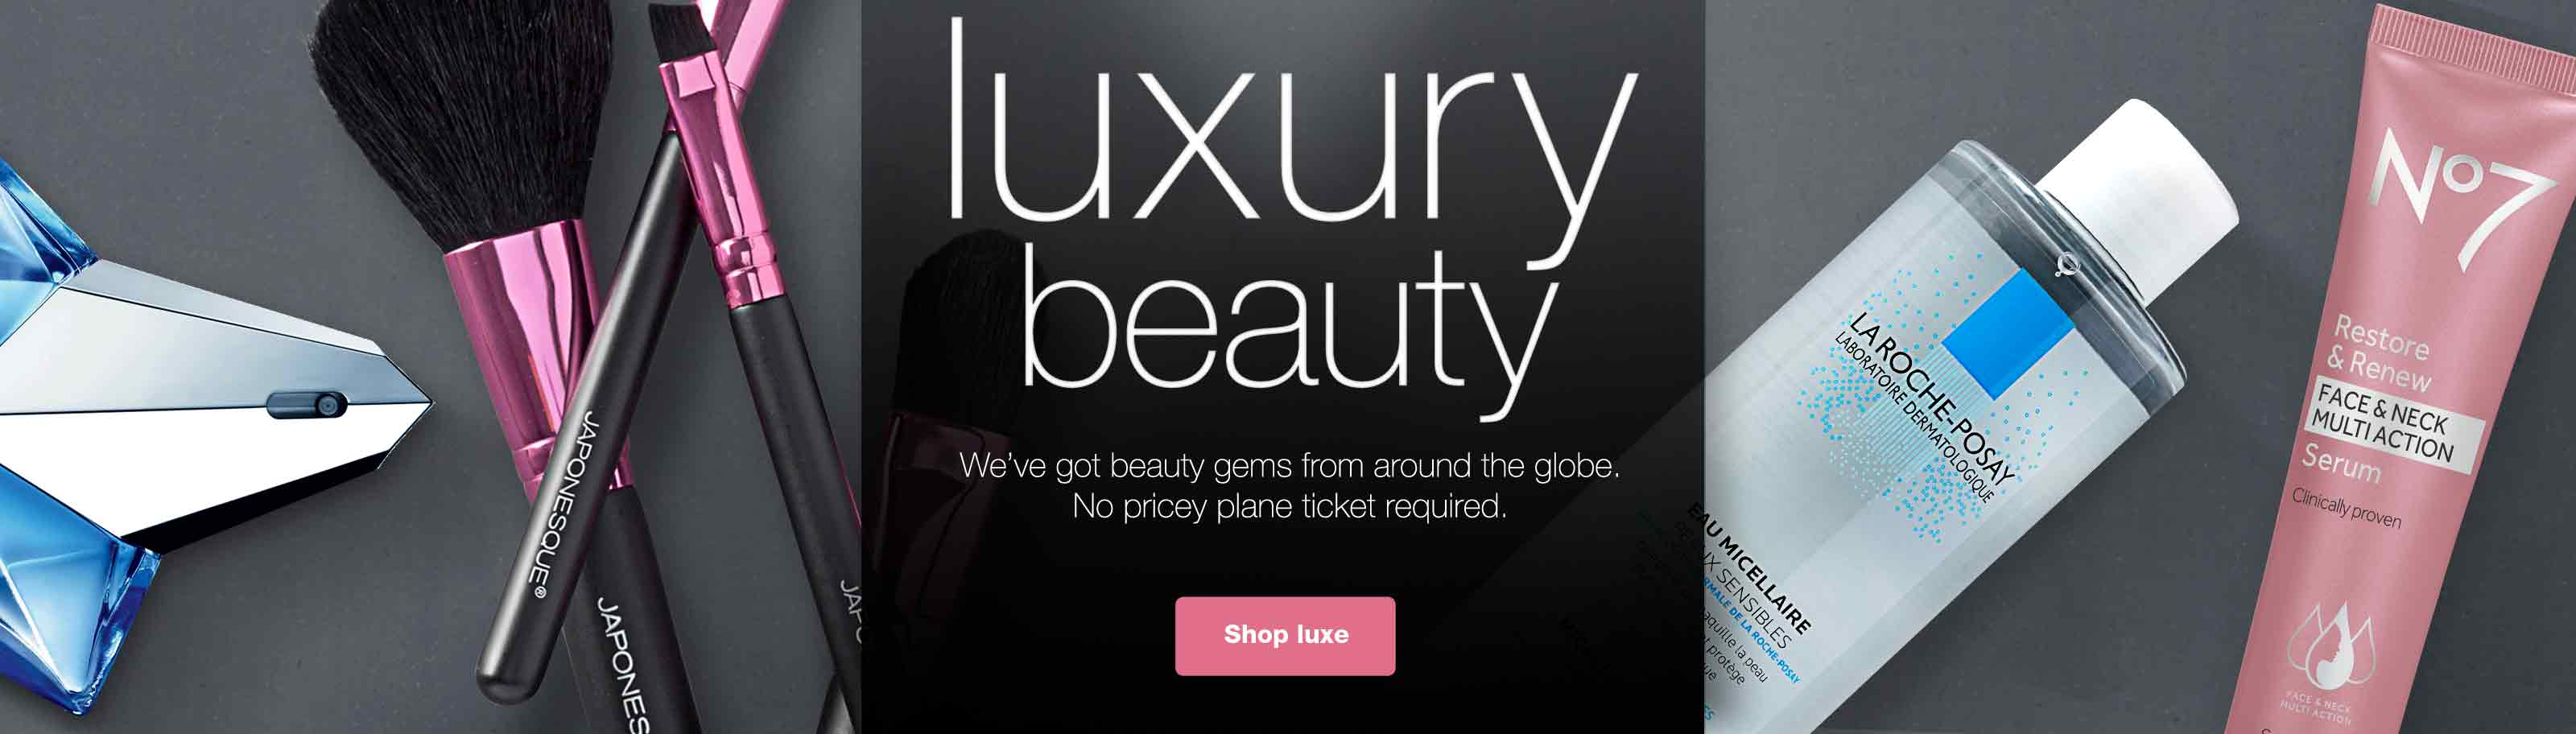 luxury beauty. We've got beauty gems from around he globe. No pricey plane ticket required. Shop luxe.